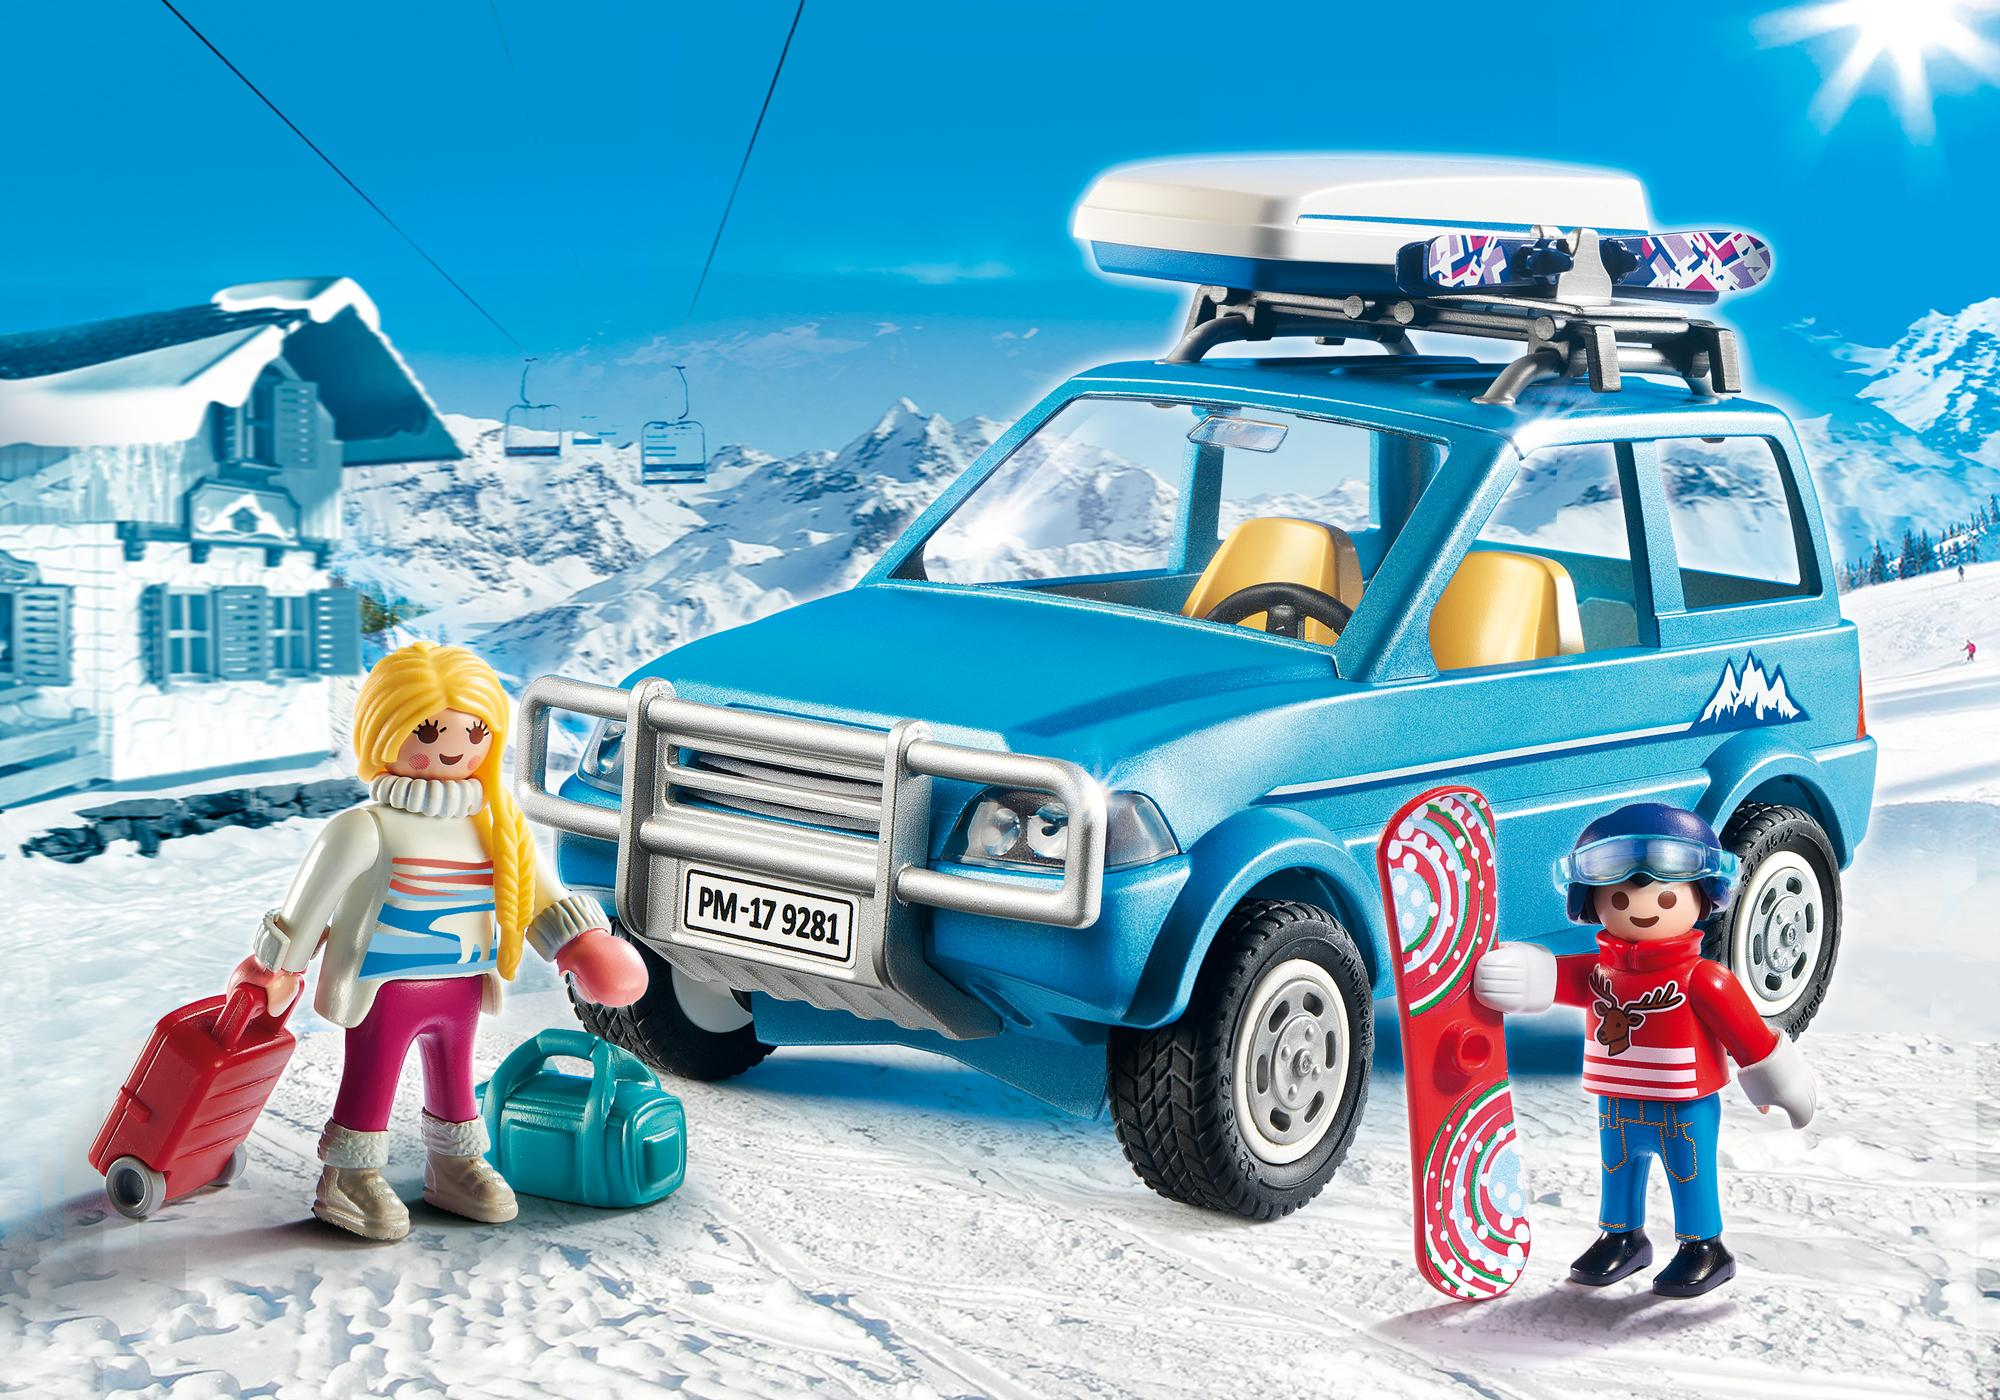 http://media.playmobil.com/i/playmobil/9281_product_detail/Winter SUV